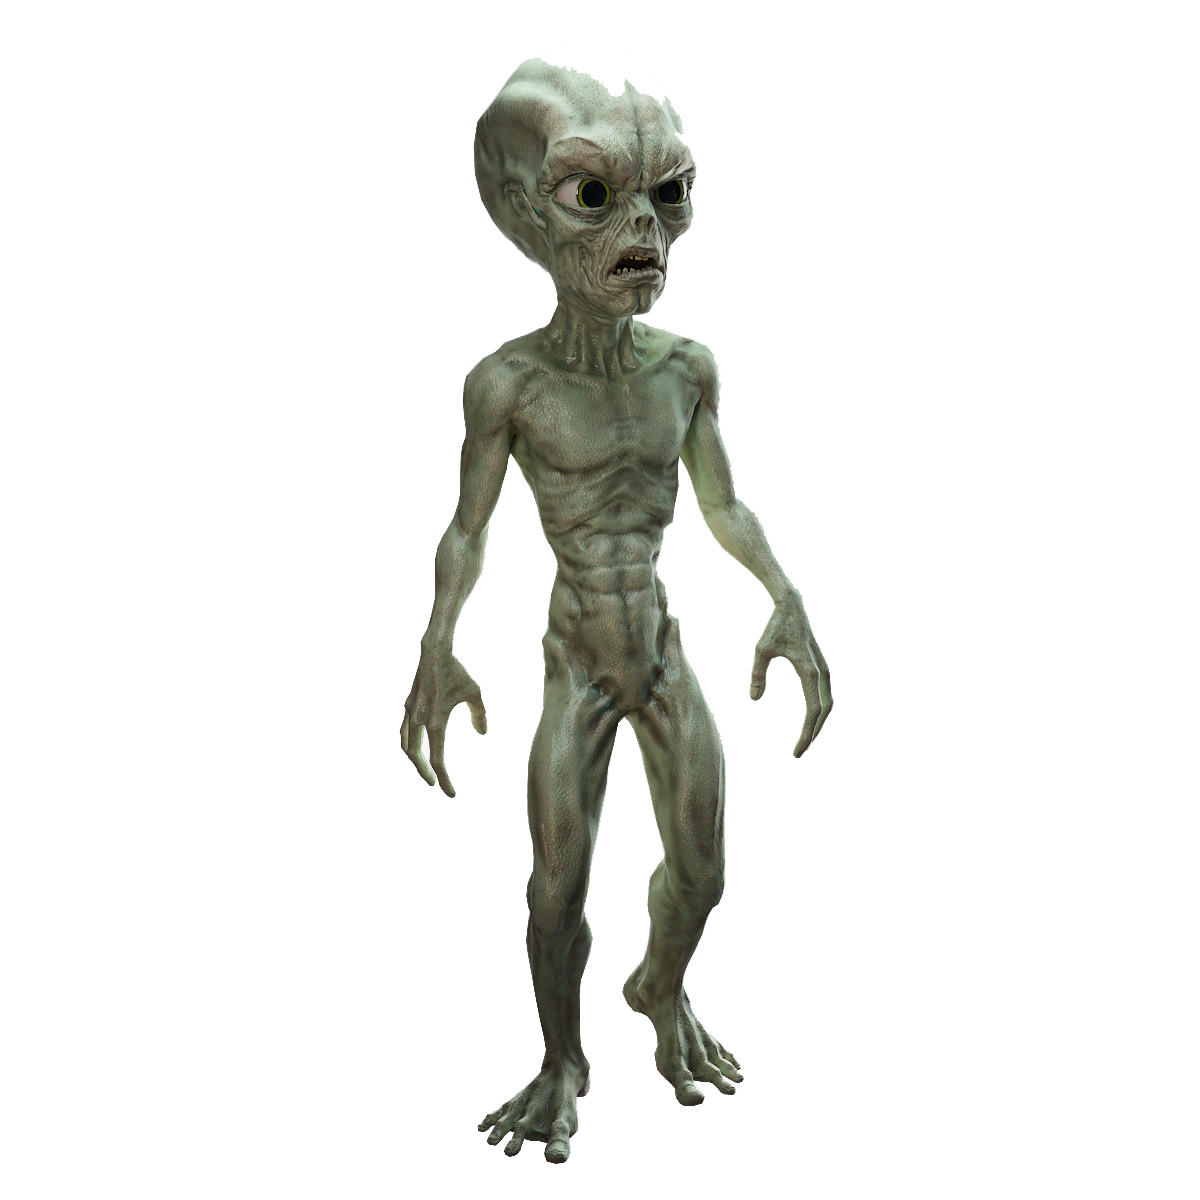 Download free png photo. Aliens clipart alien body